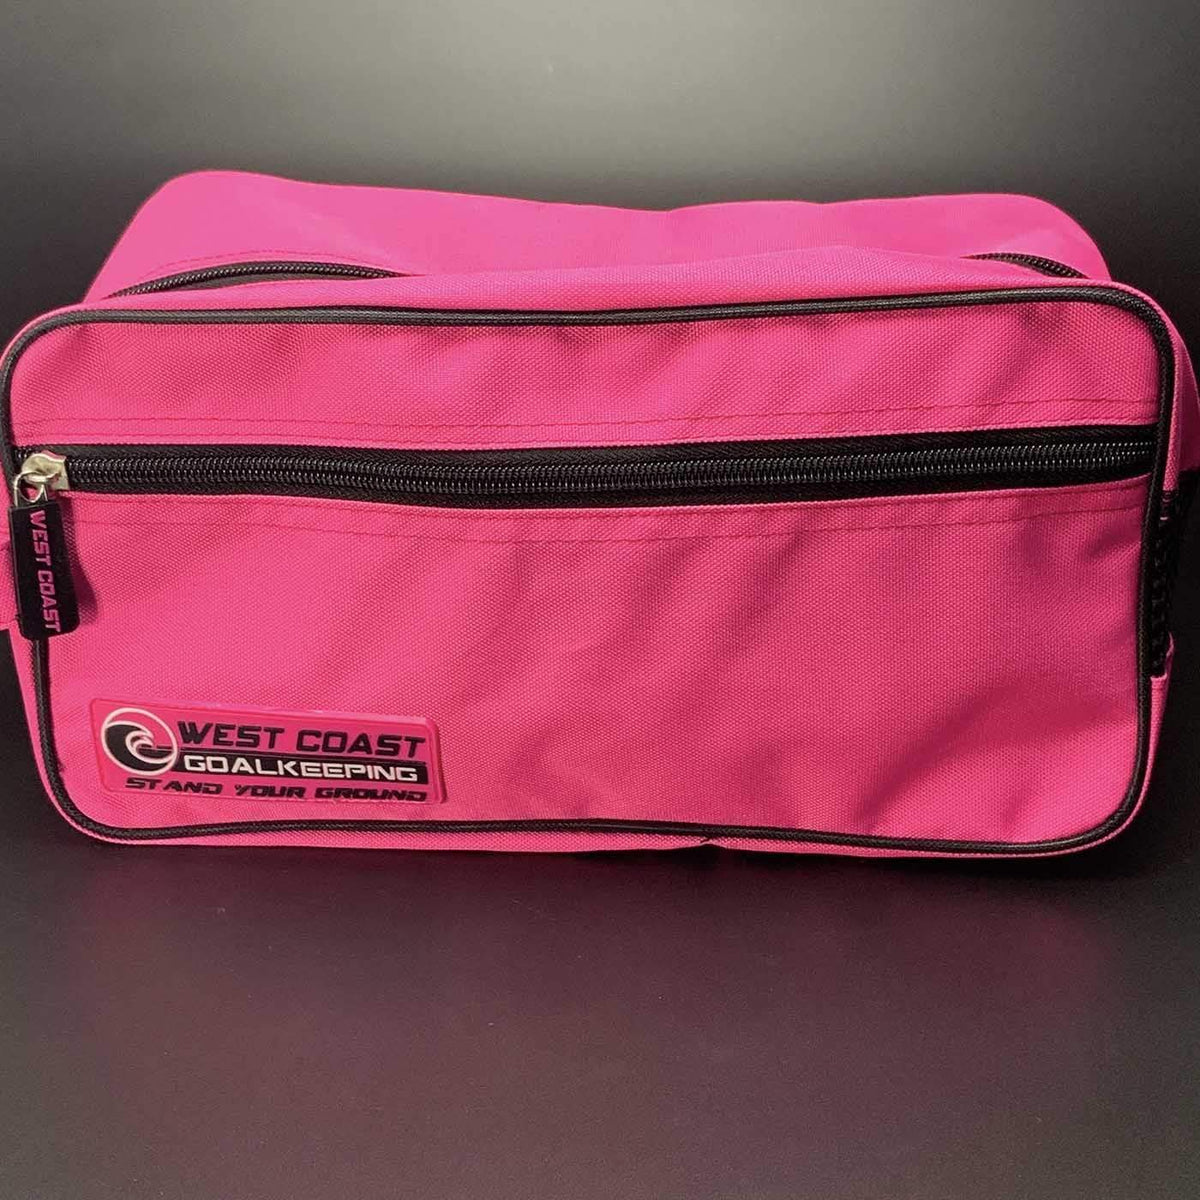 Pro Team Glove Bag - West Coast Goalkeeping